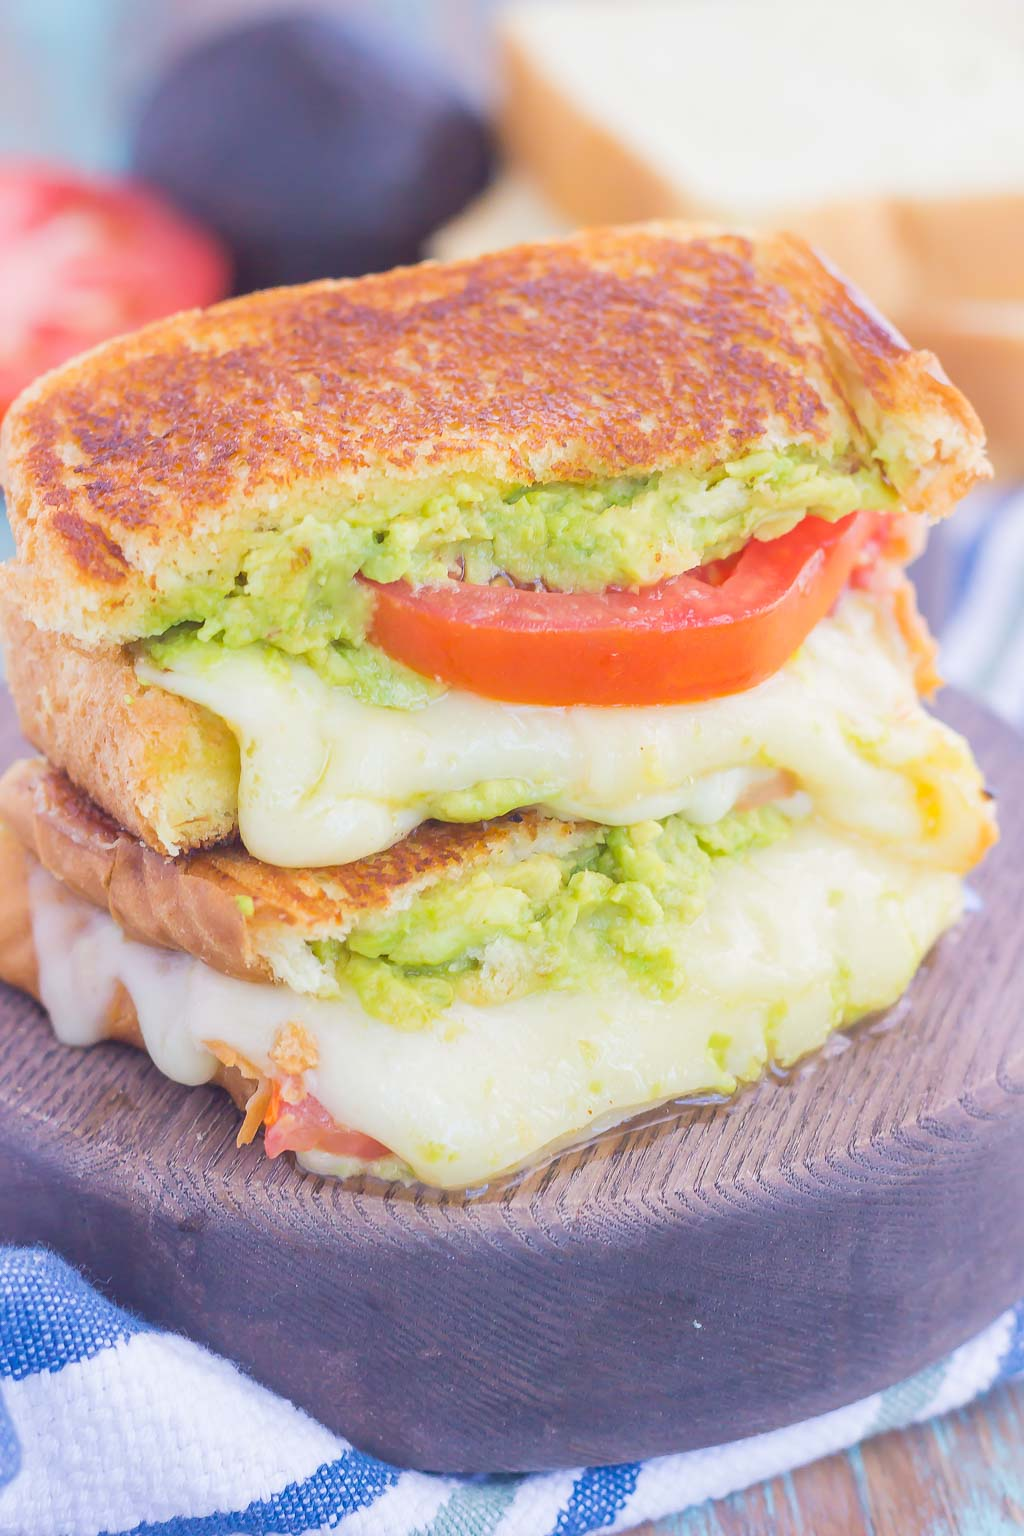 Tomato, Avocado and Mozzarella Grilled Cheese is filled with fresh tomato slices, smashed avocado and creamy mozzarella cheese. Grilled until golden on the outside and melty on the inside, this sandwich is perfect to pair with soup for an easy lunch or dinner!